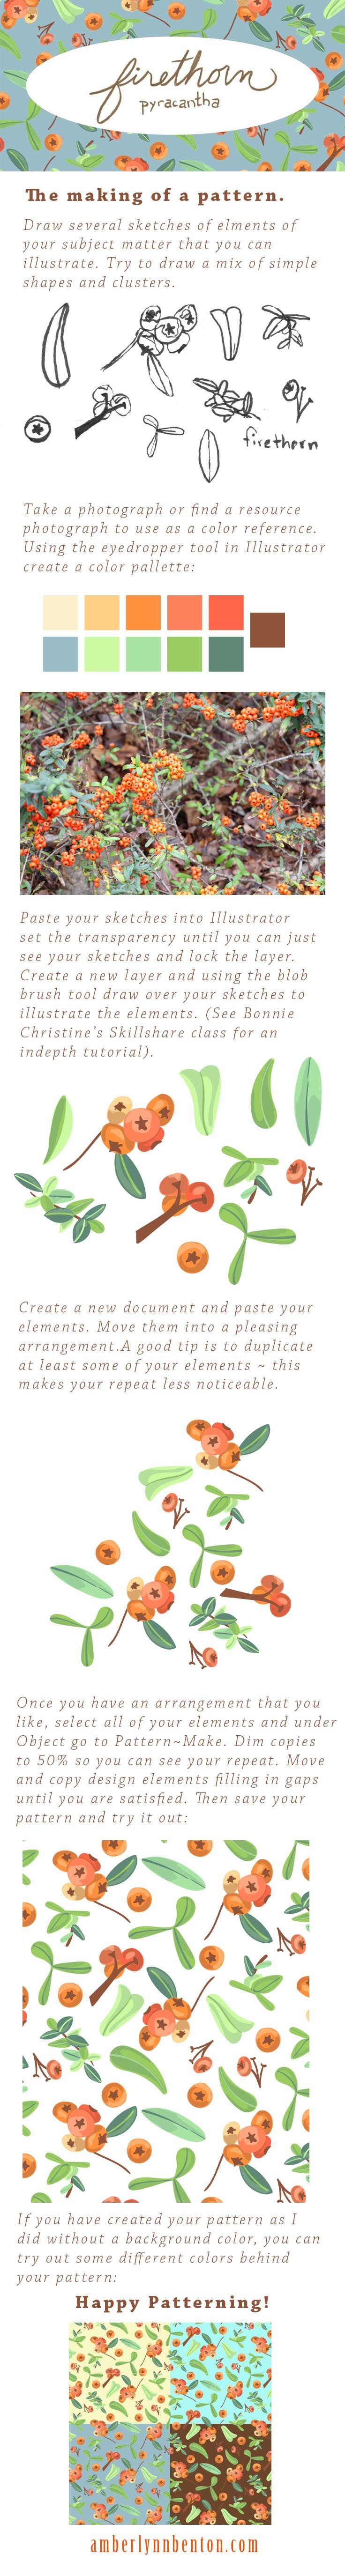 A brief illustrated pattern making tutorial using Adobe Illustrator.